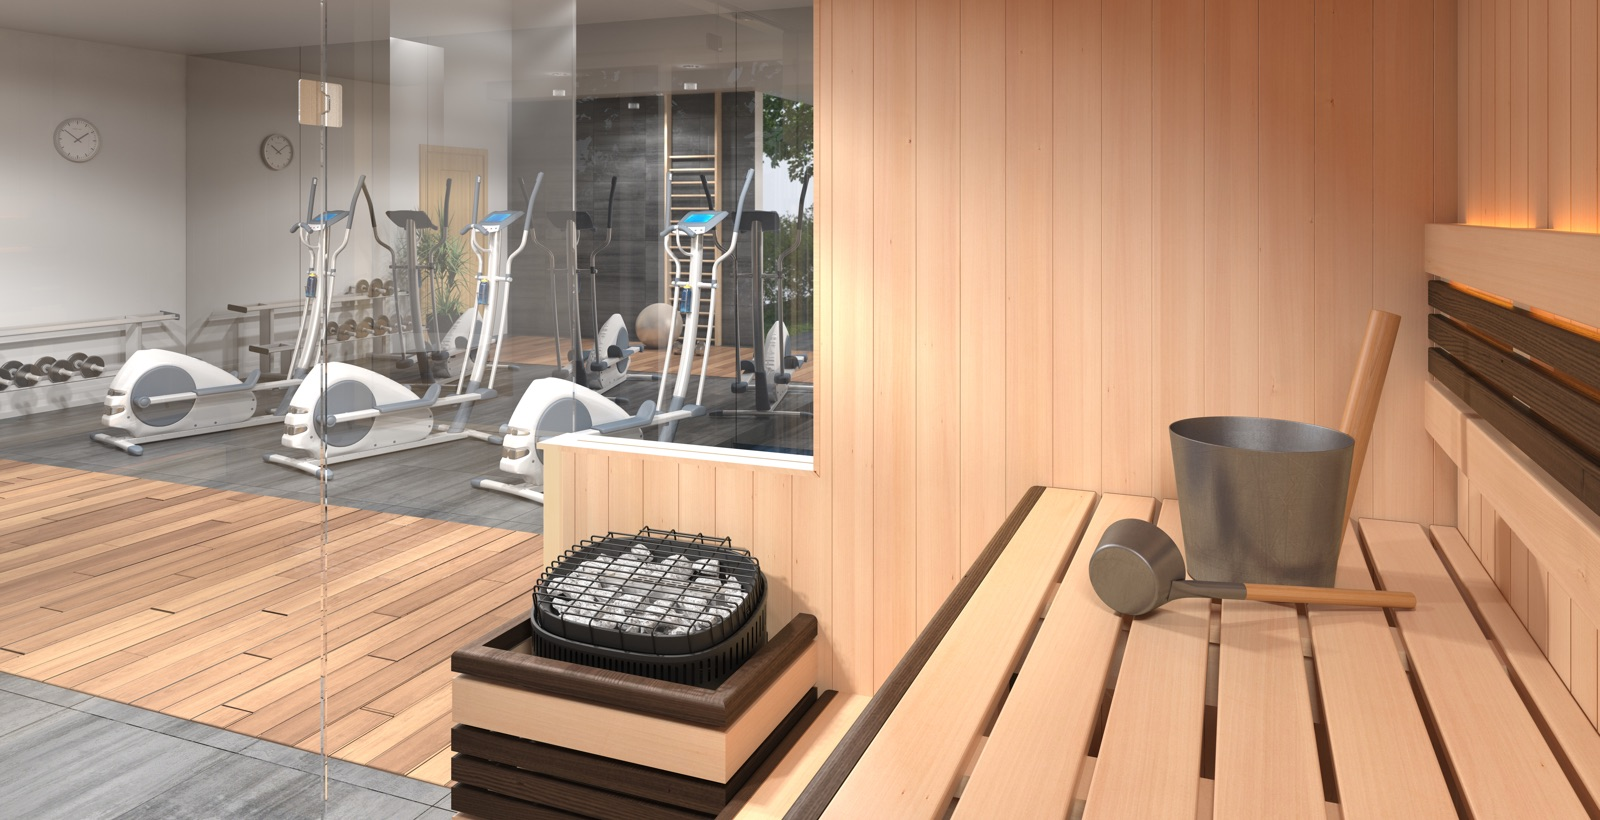 Reasons to Install a Commercial Sauna in Your Business featured image